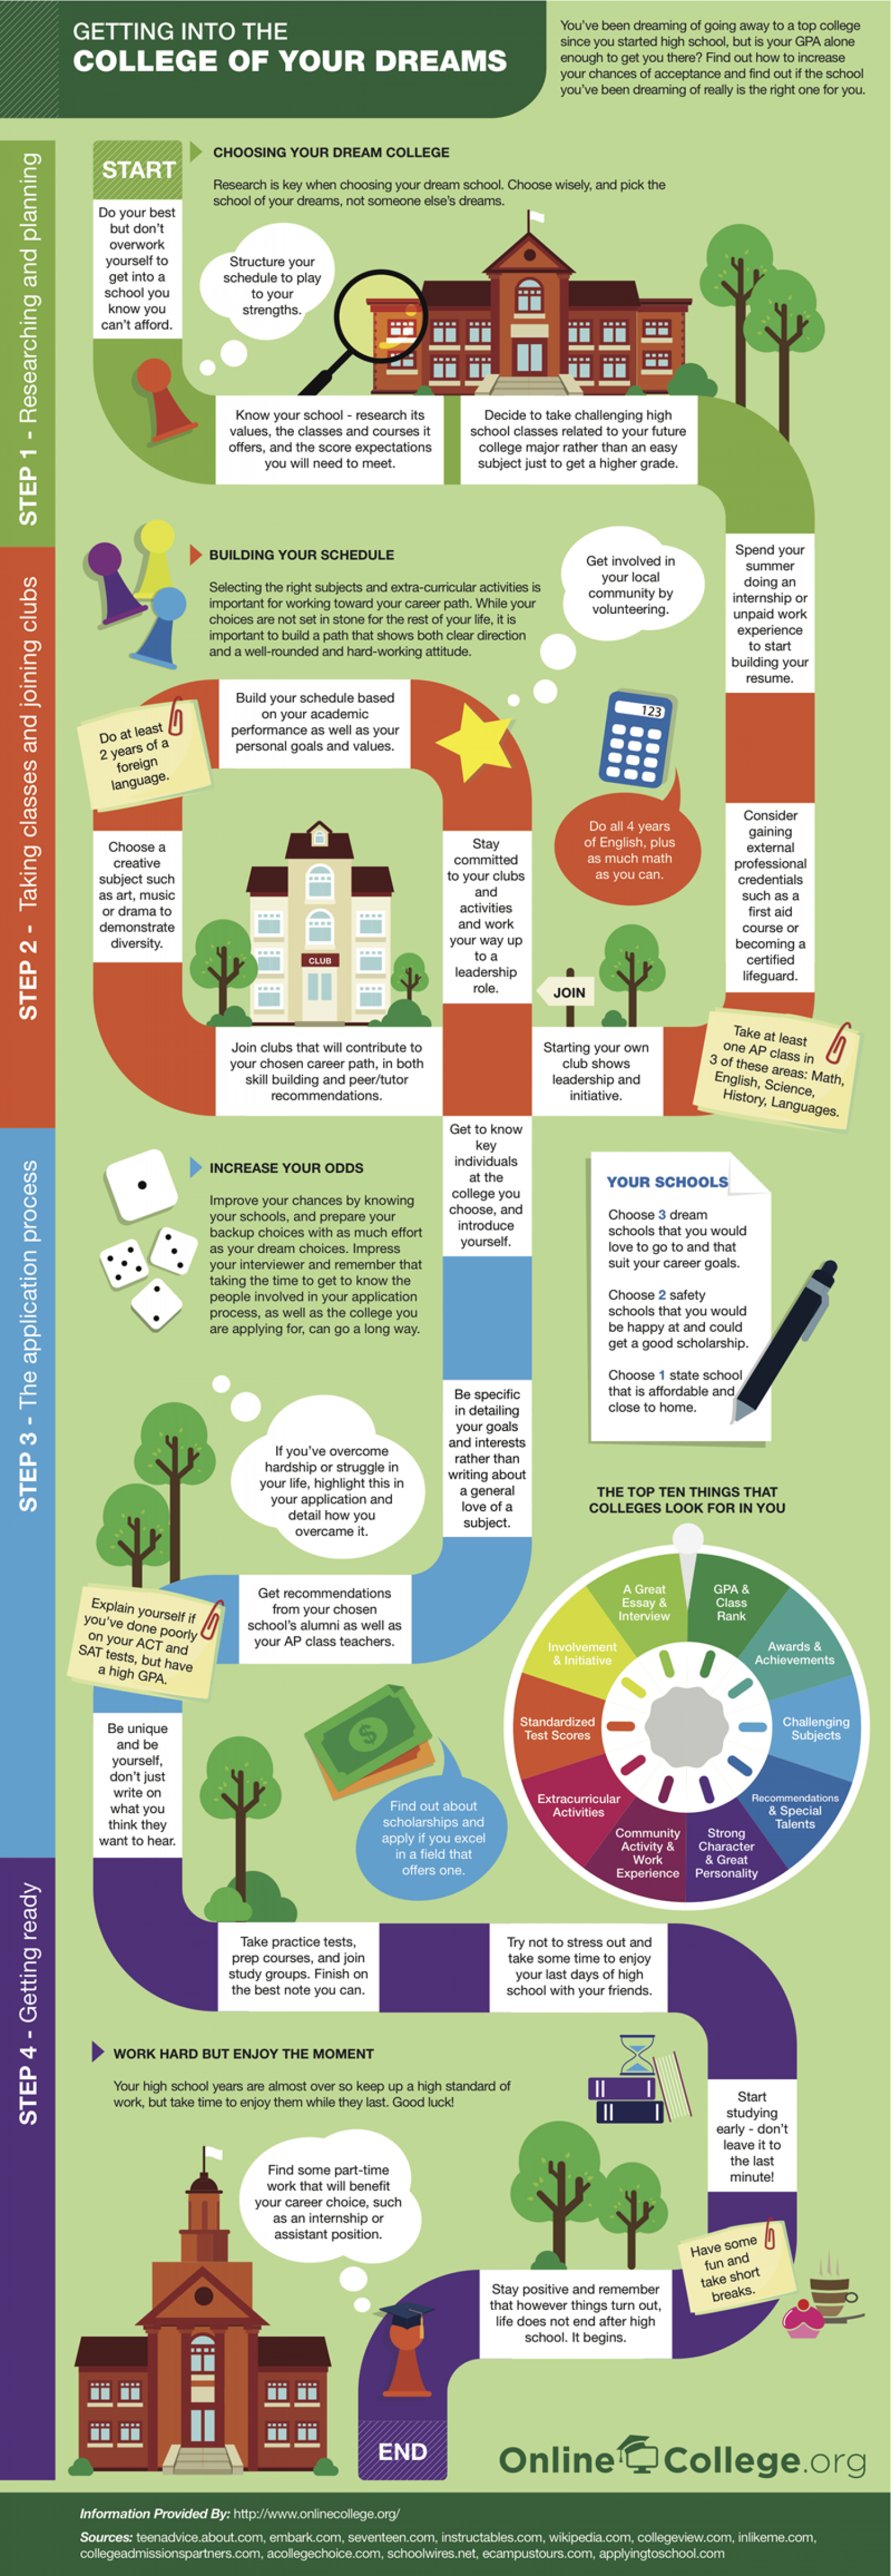 Getting Into the College of Your Dreams Infographic